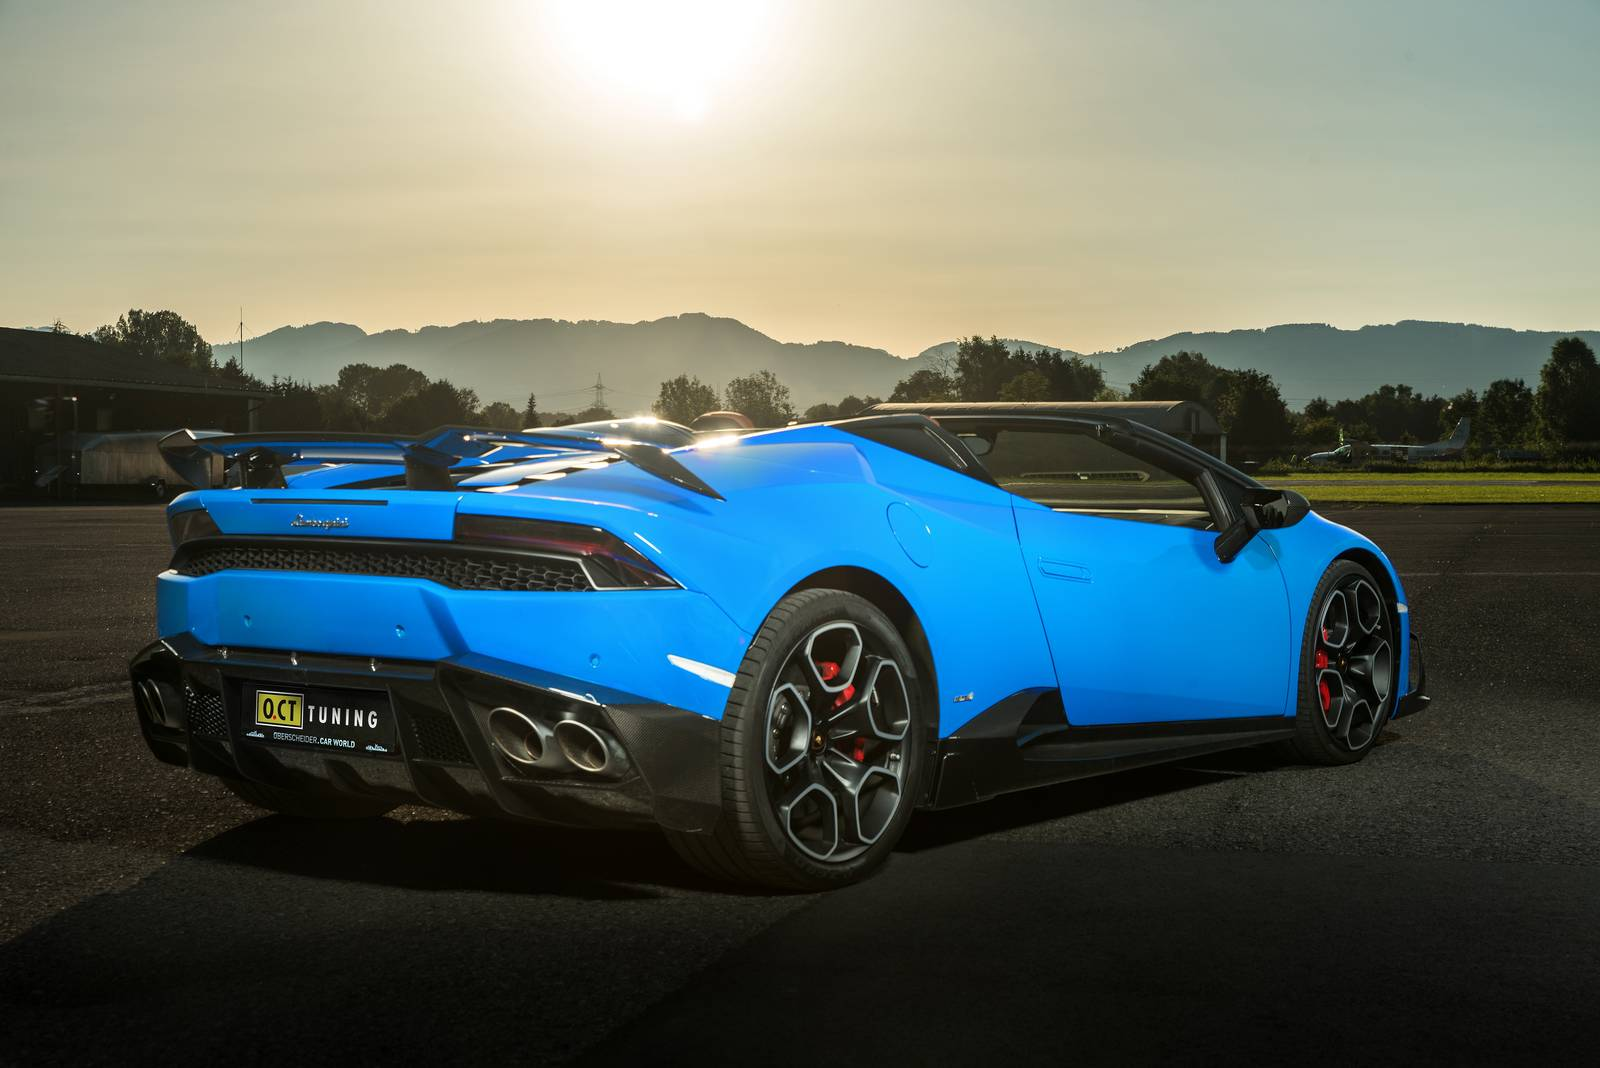 official 805hp lamborghini huracan spyder by o ct tuning gtspirit. Black Bedroom Furniture Sets. Home Design Ideas